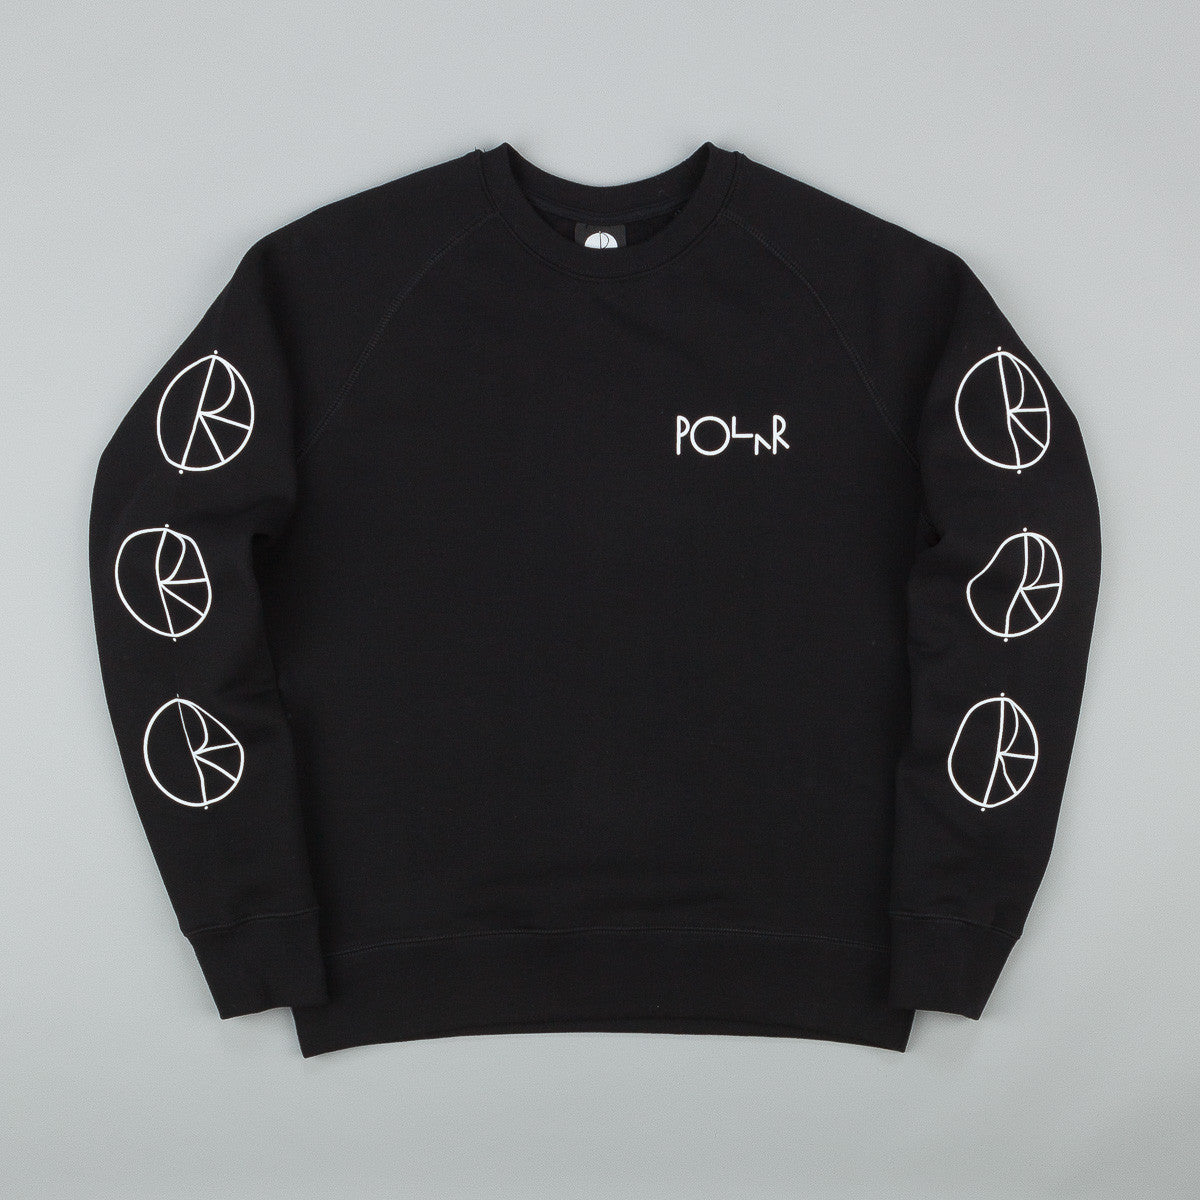 Polar Racing Sweatshirt - Black / White